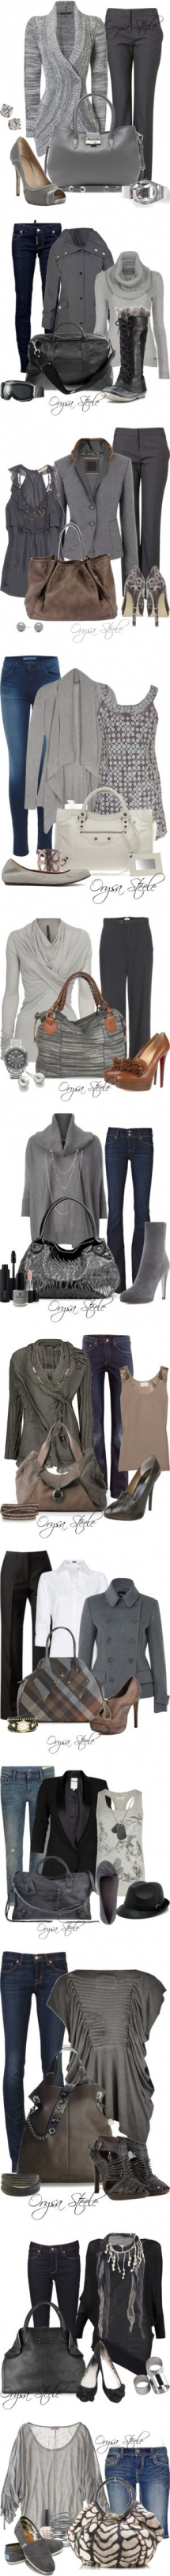 Shades of Grey - My Style